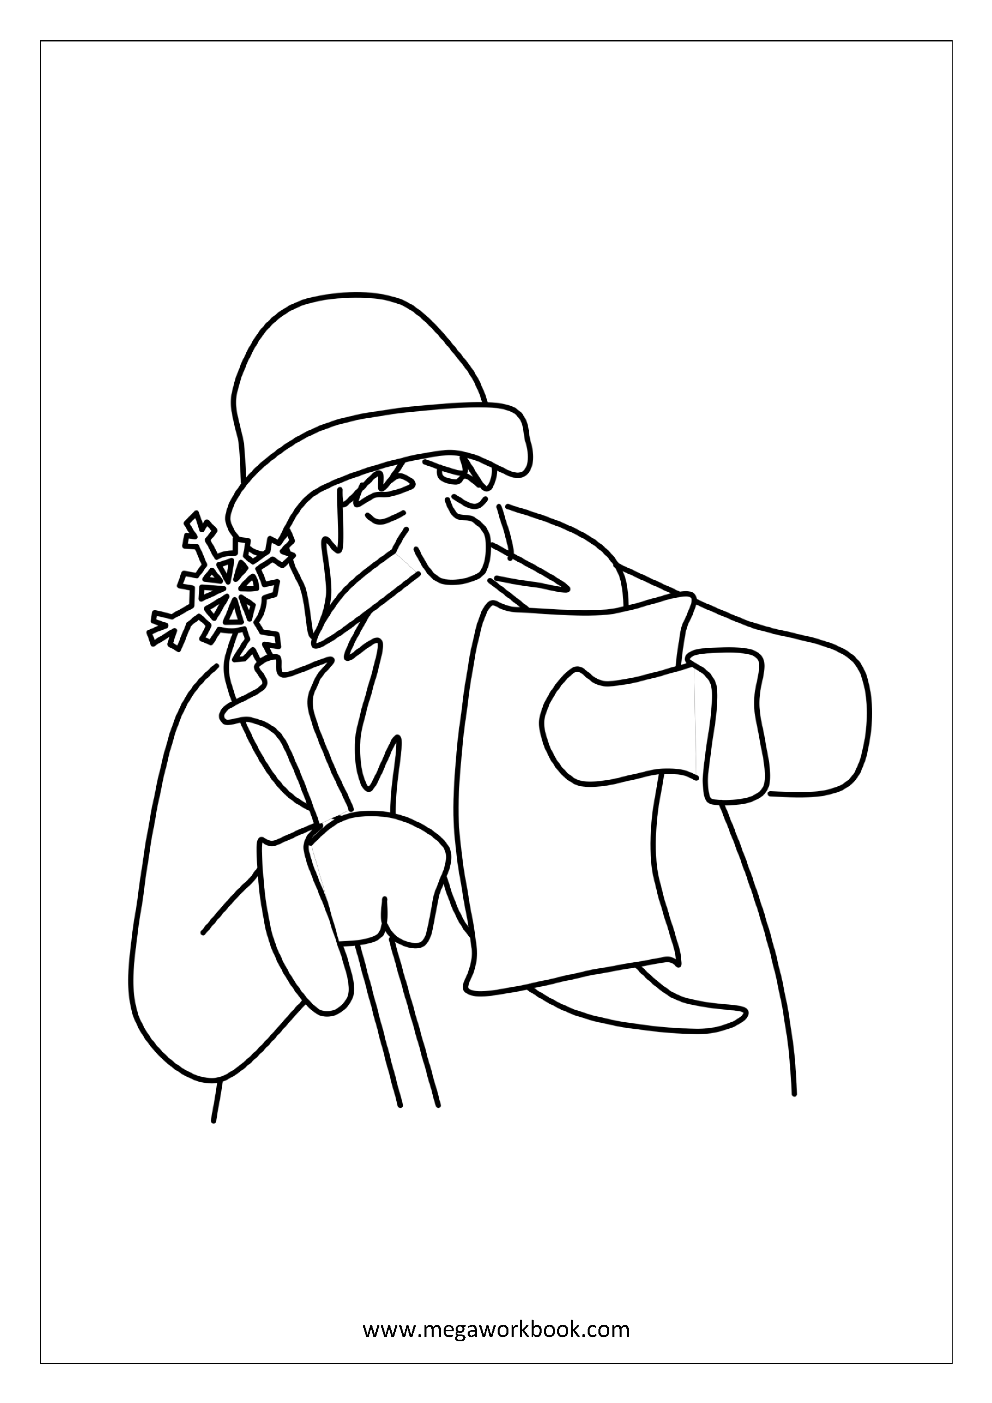 Santa Wish List Coloring Pages With Free Printable Christmas For Kindergarten And